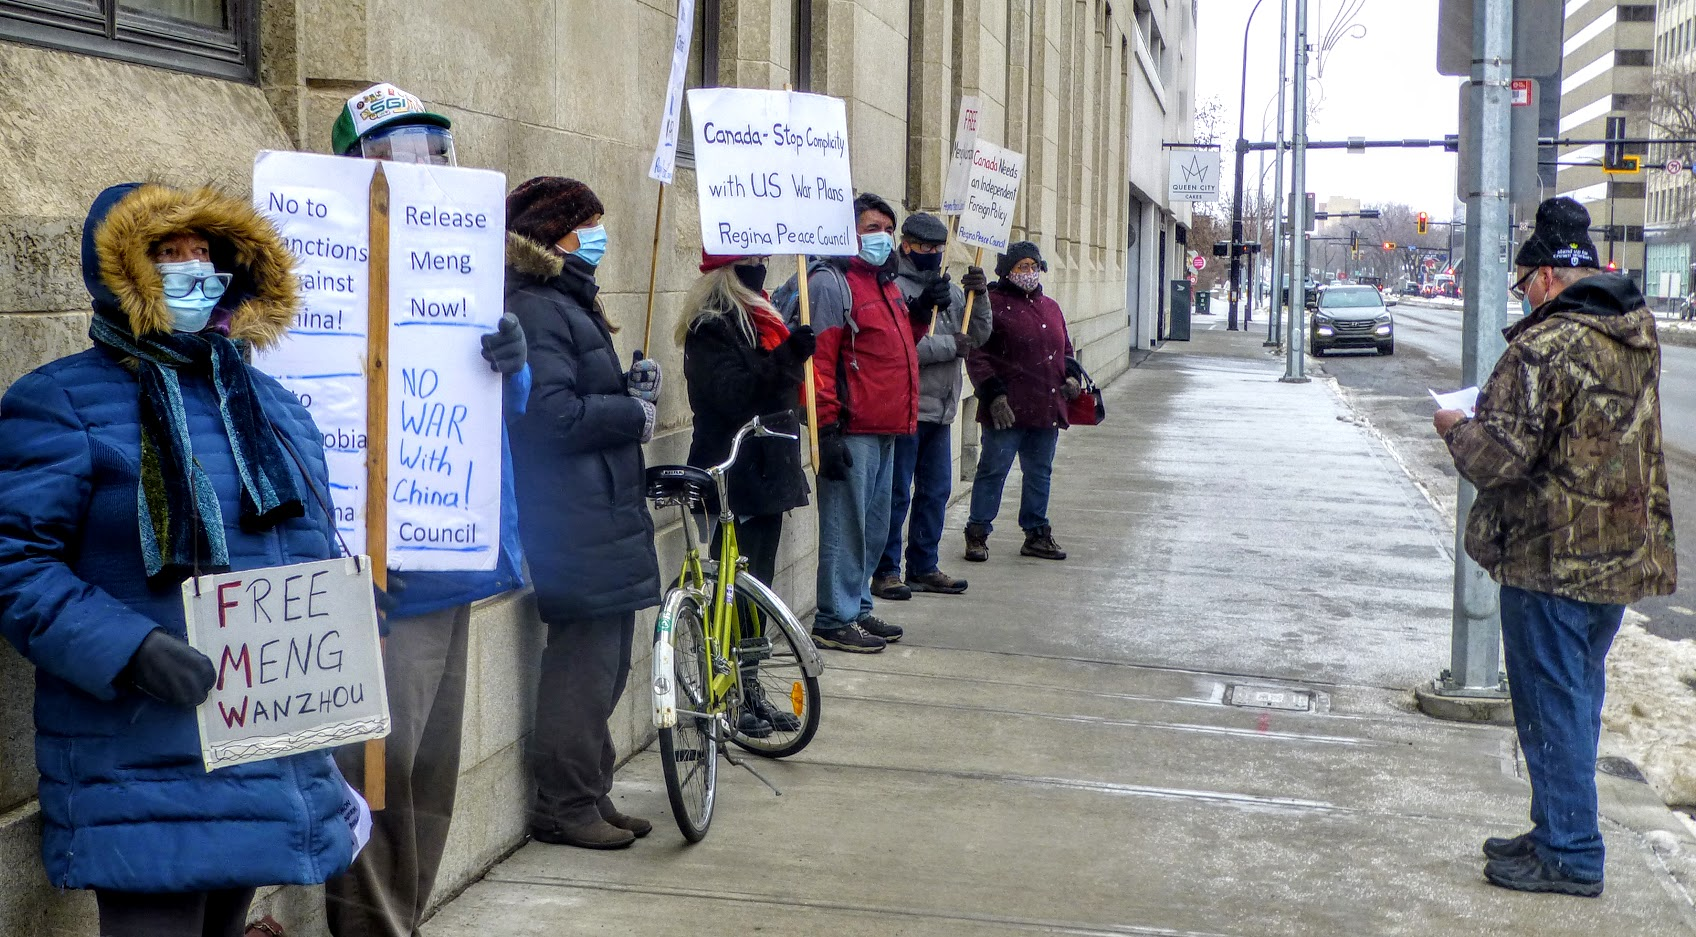 """Seven people in winter clothing and face masks line the street in Regina, holding placards that read: """"Free Meng Wanzhou,"""" """"No sanctions against China,"""" """"No war with China."""""""